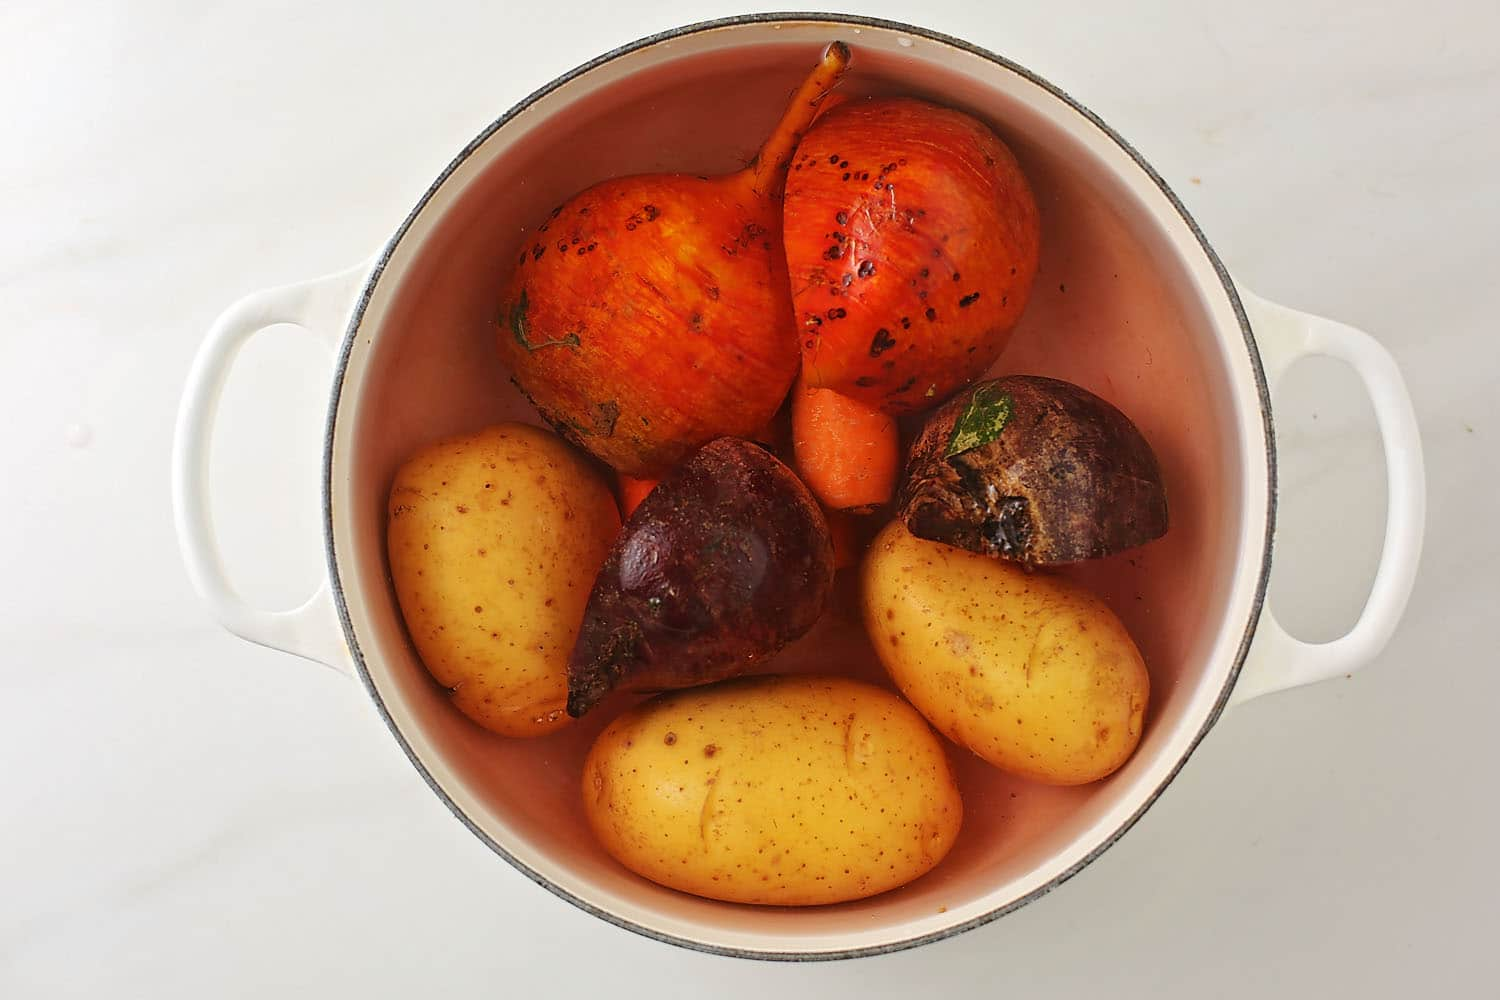 boiling vegetables in the pot